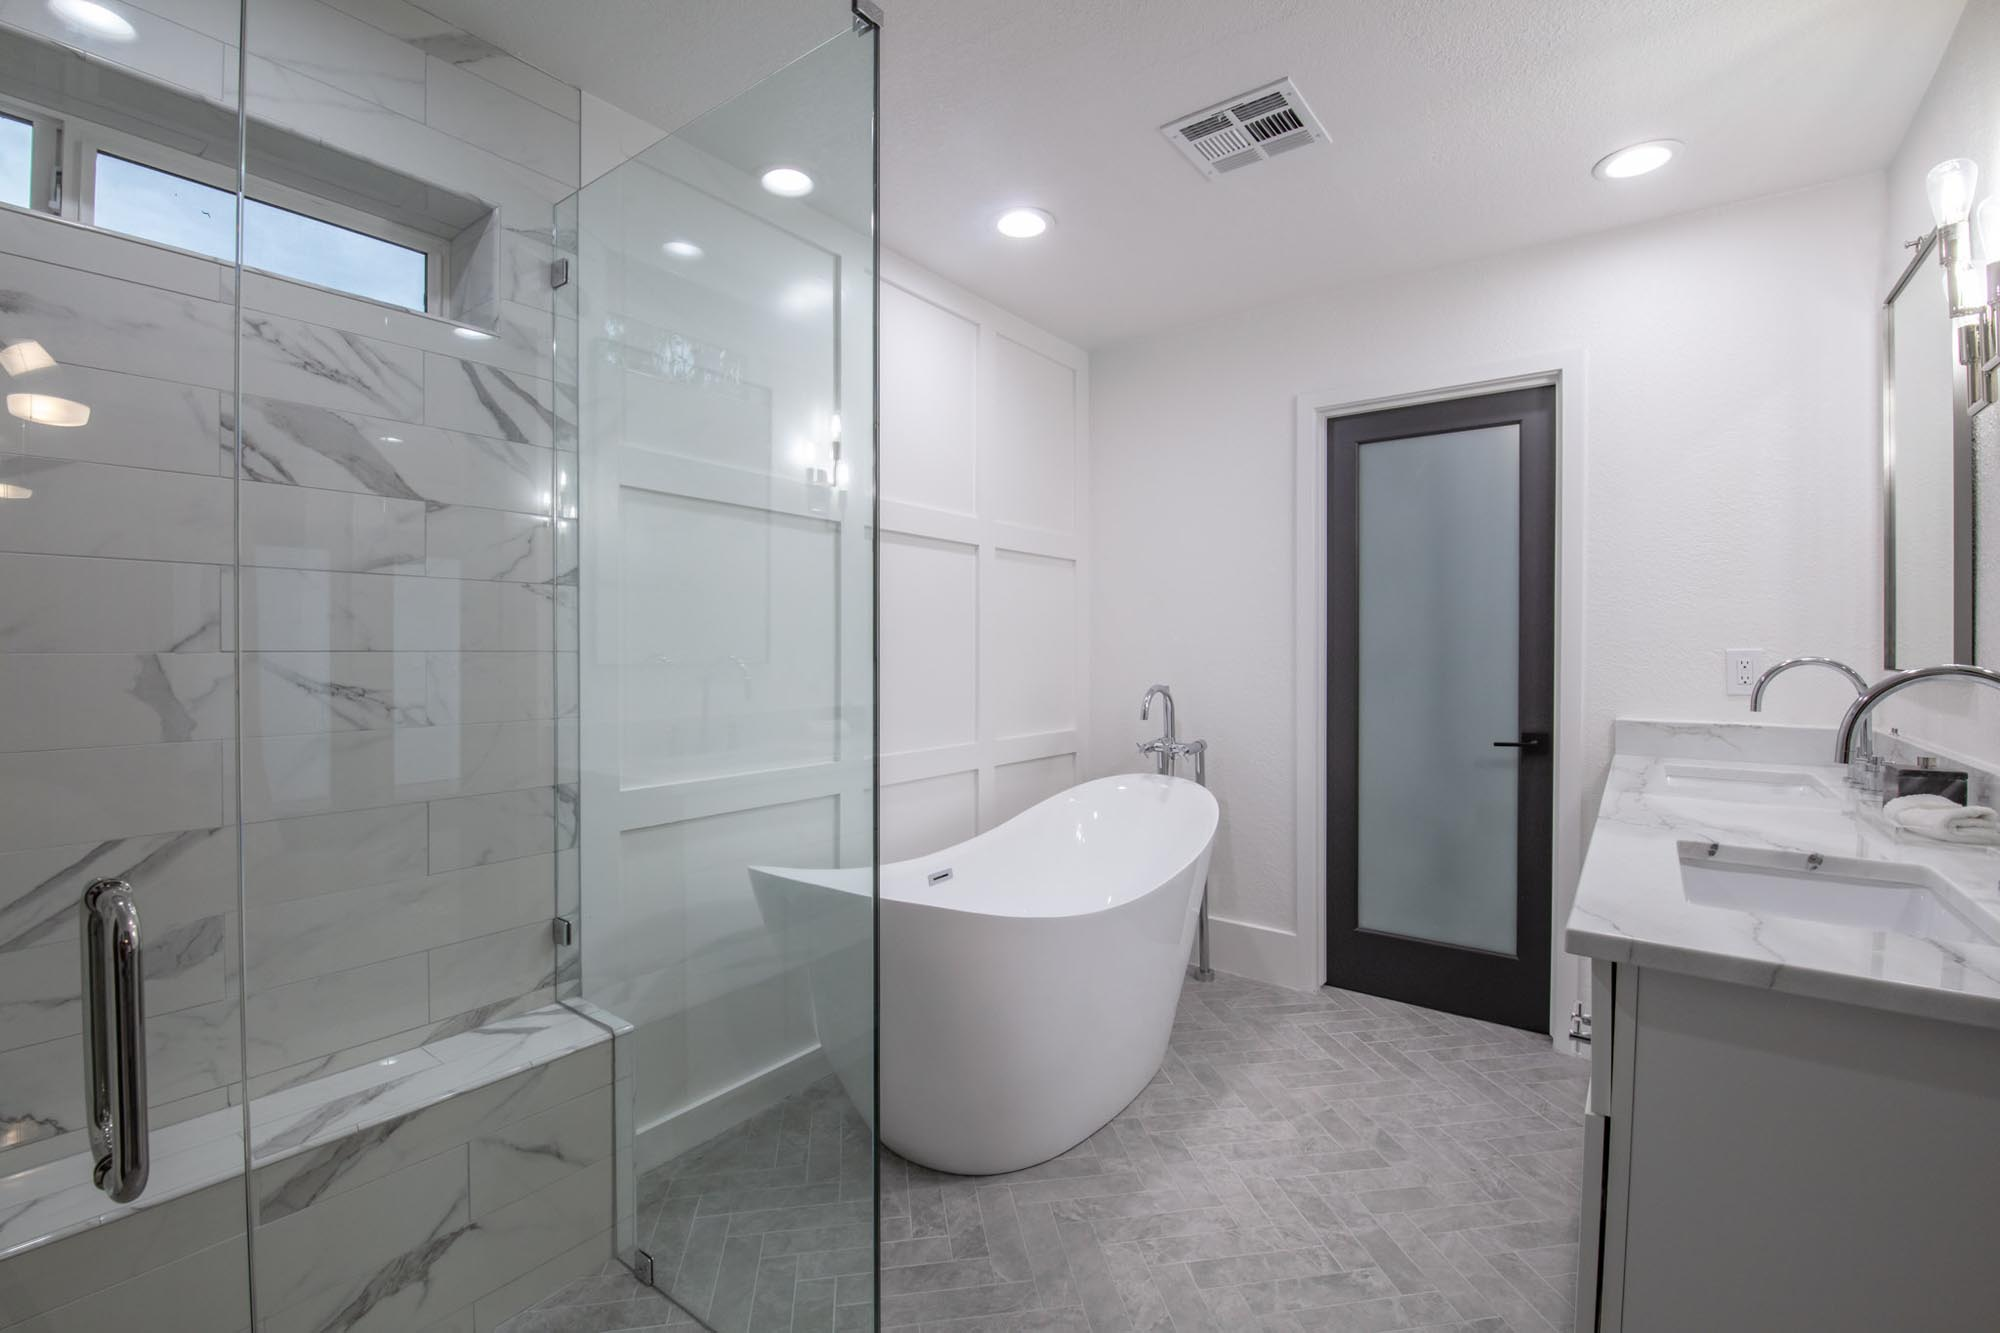 Bathroom with glass shower room and white bathtub